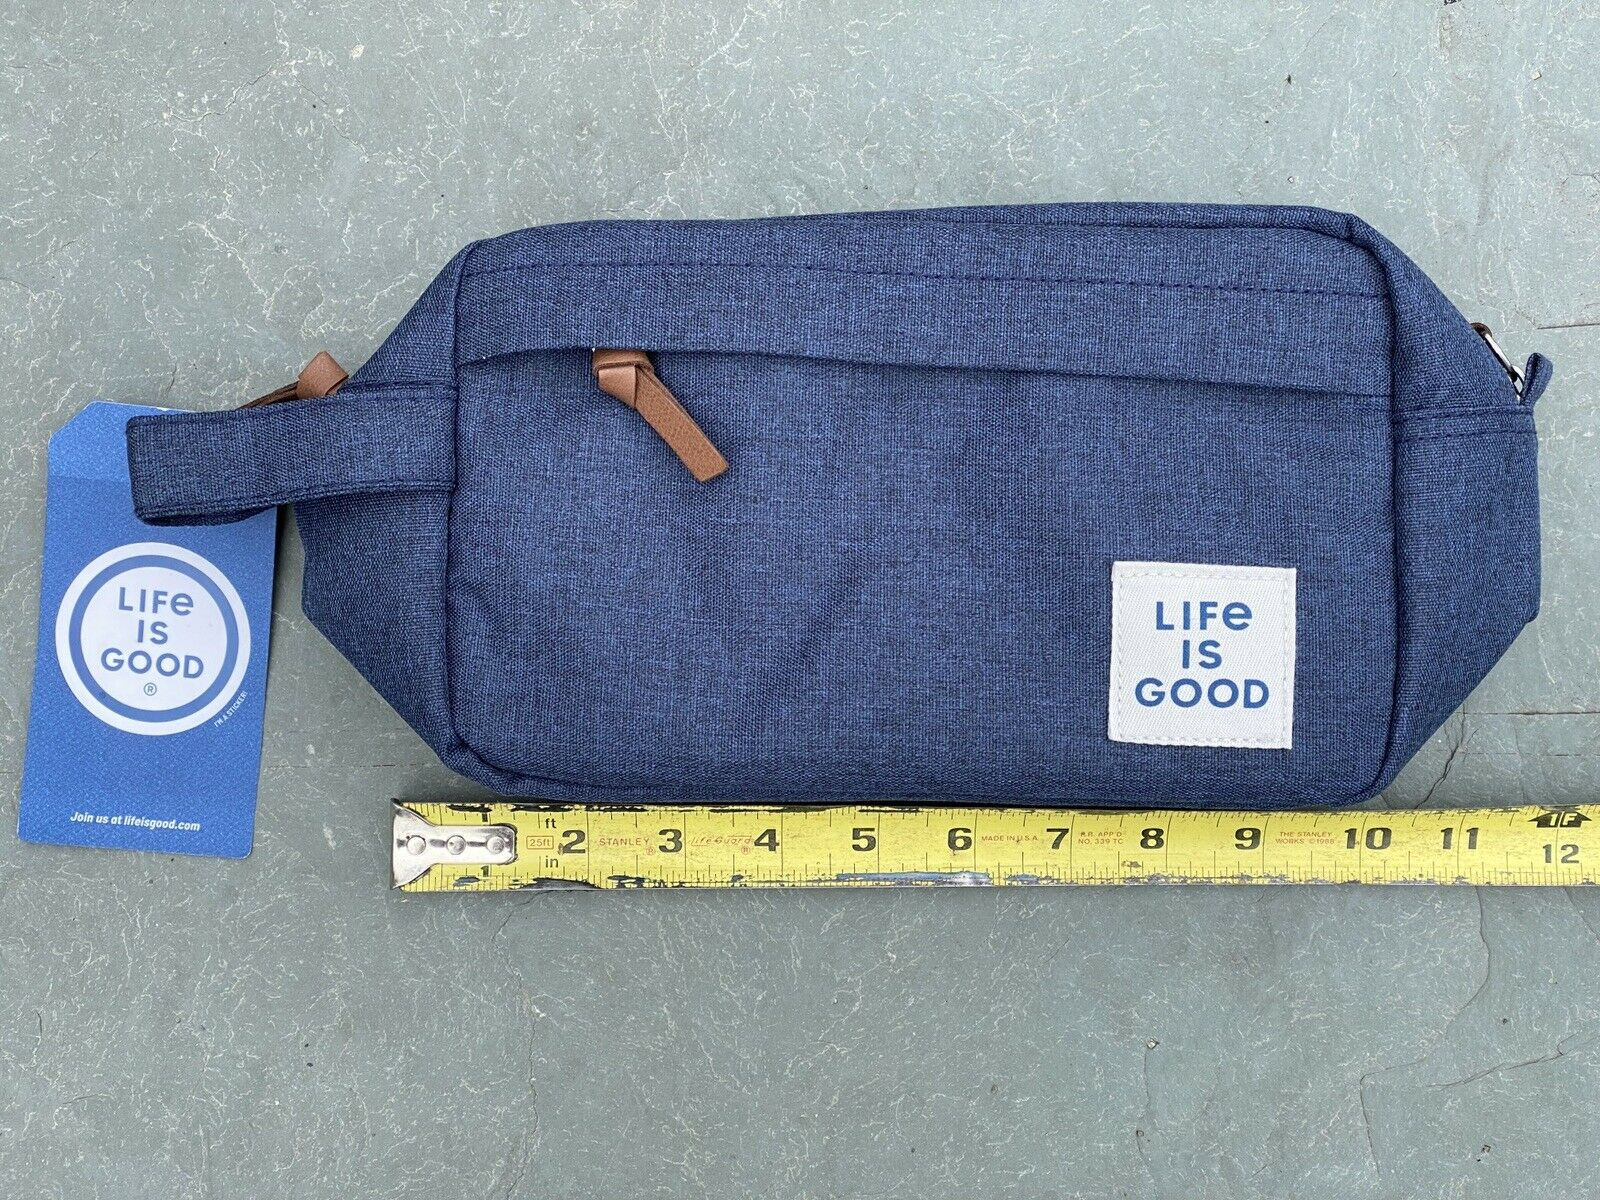 Toiletry Travel Bag 'Life Is Good' Brand New With Tags Blue Denim Look...